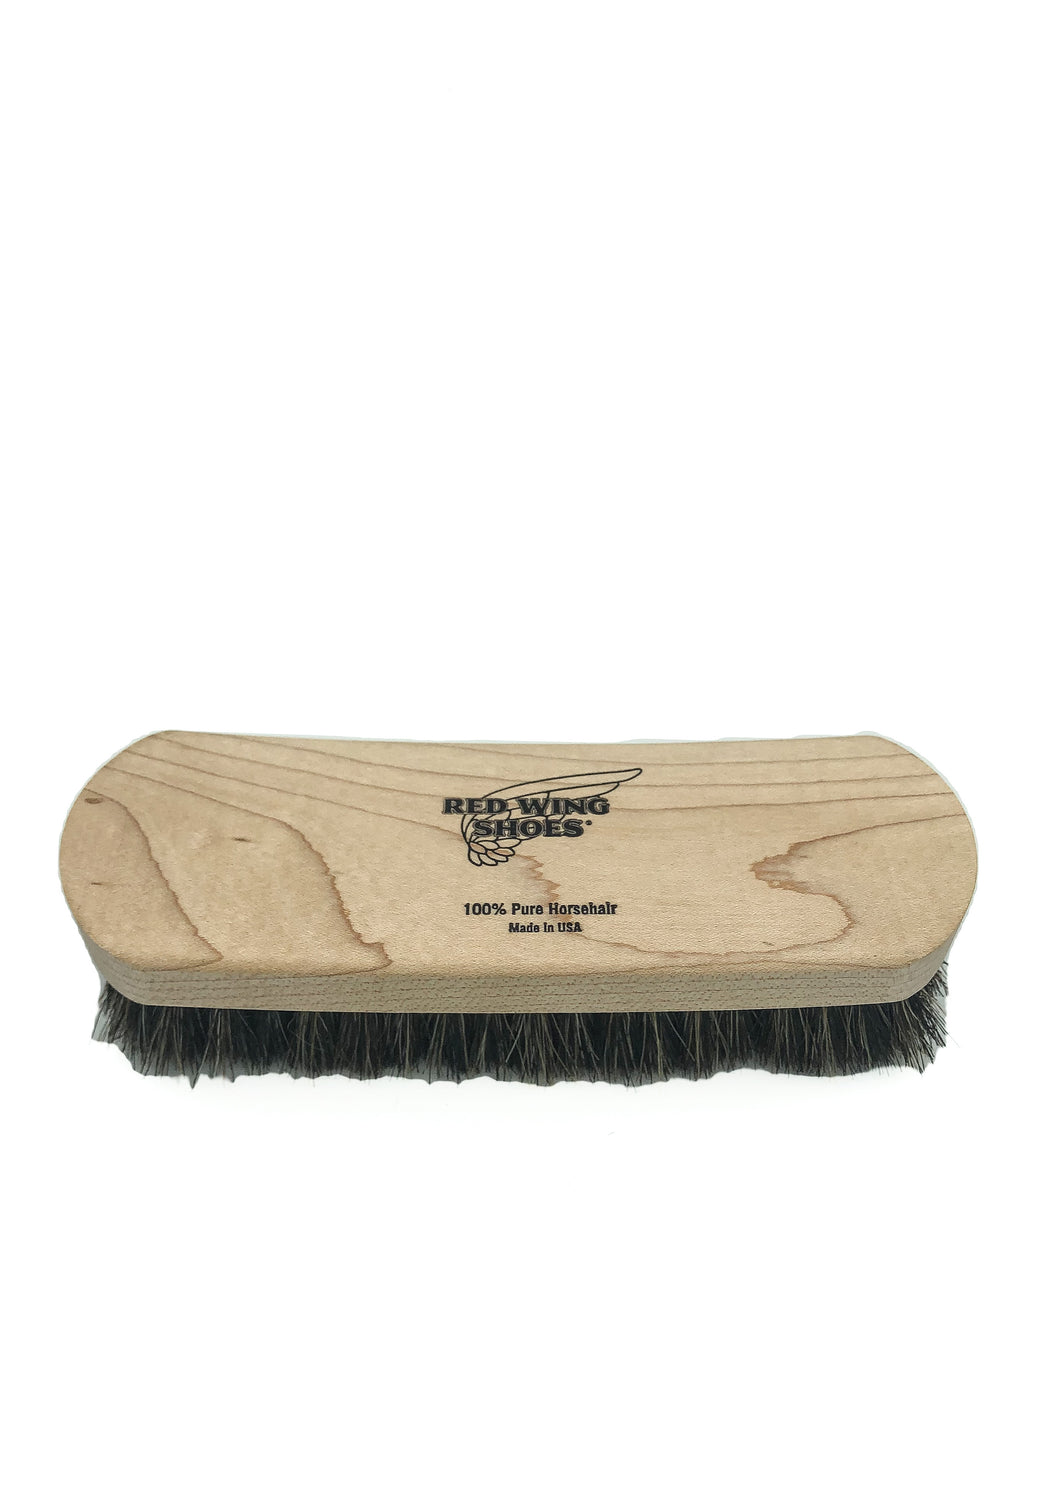 Redwing Natural 100% Horsehair Brush